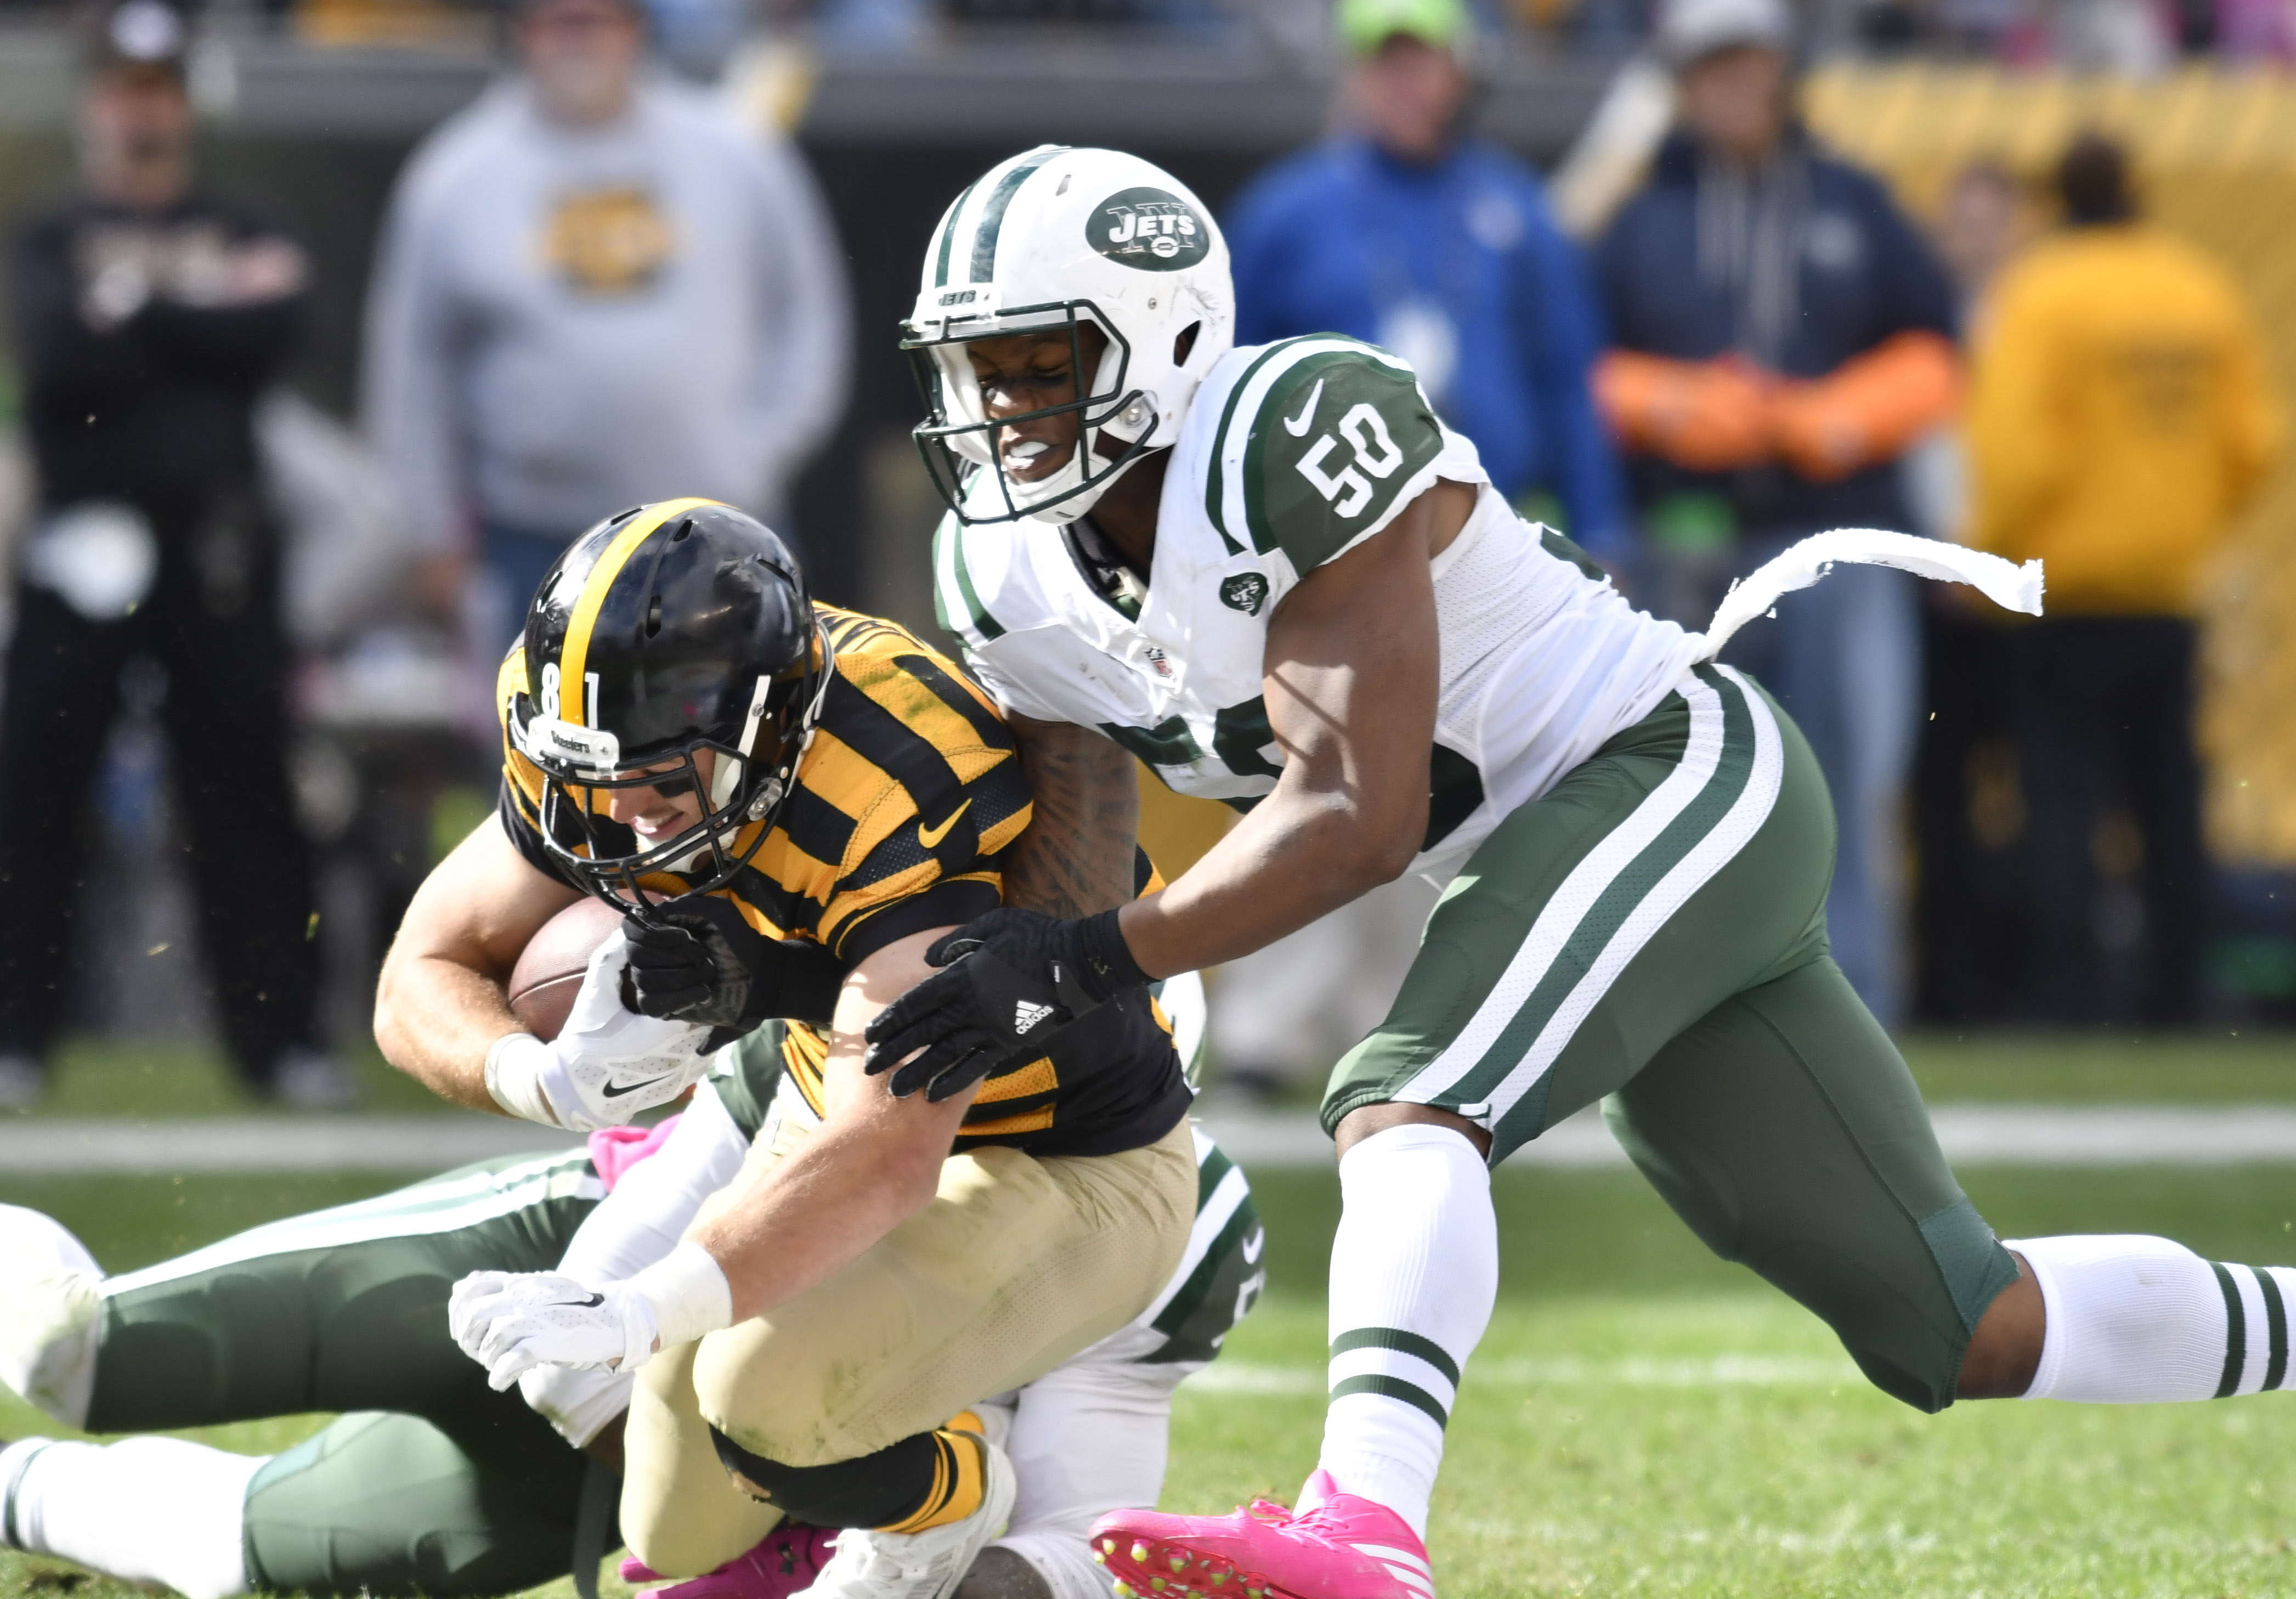 9598697-nfl-new-york-jets-at-pittsburgh-steelers